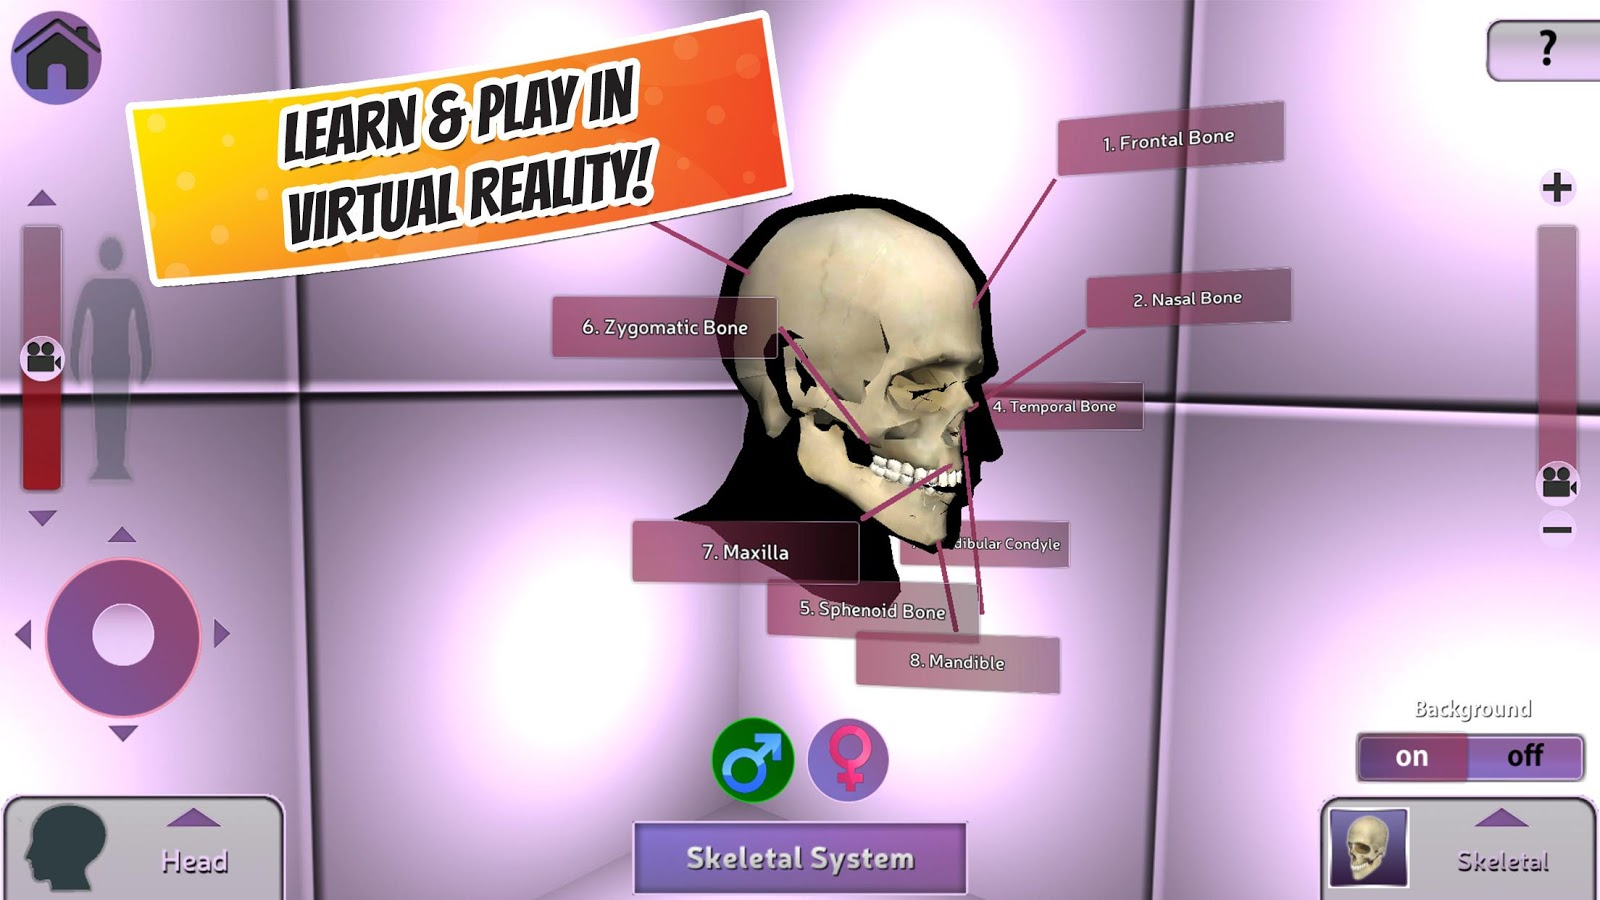 Best anatomy apps for android 1025644 - follow4more.info